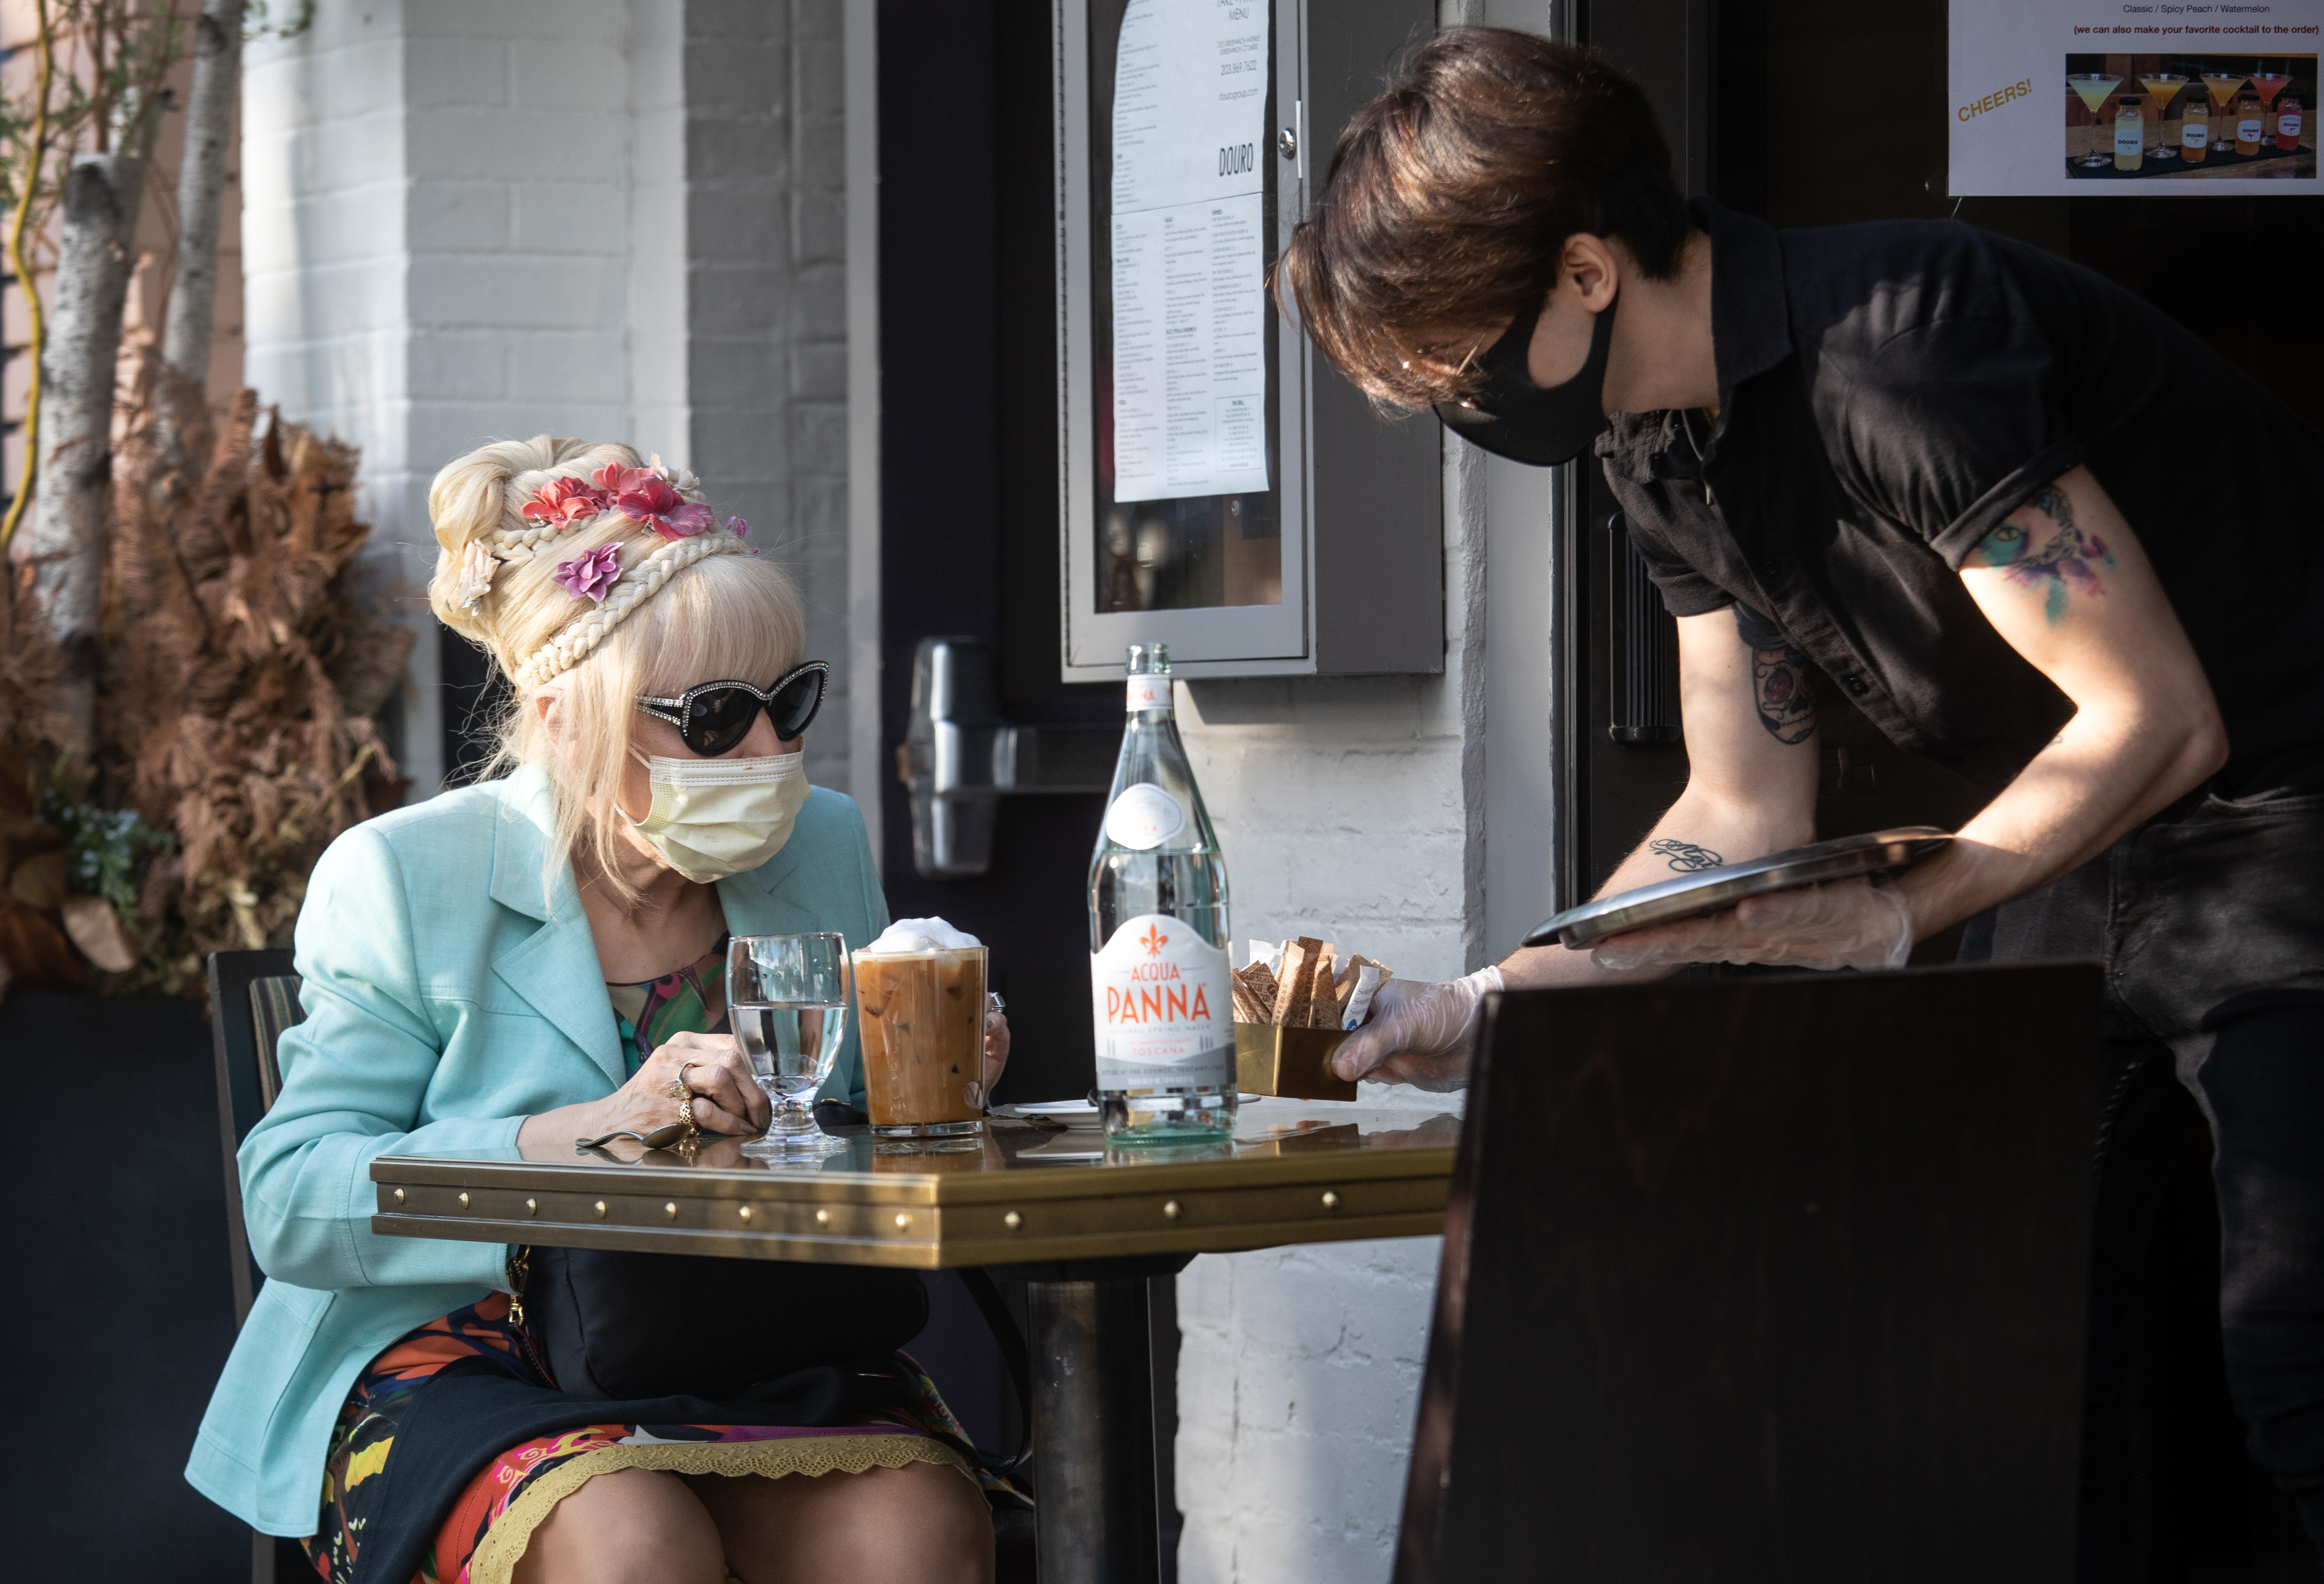 A server brings out sweetener to patron Francesca Macartney Beale at Douro restaurant on May 20, 2020 in Greenwich, Connecticut. (Photo by John Moore/Getty Images)